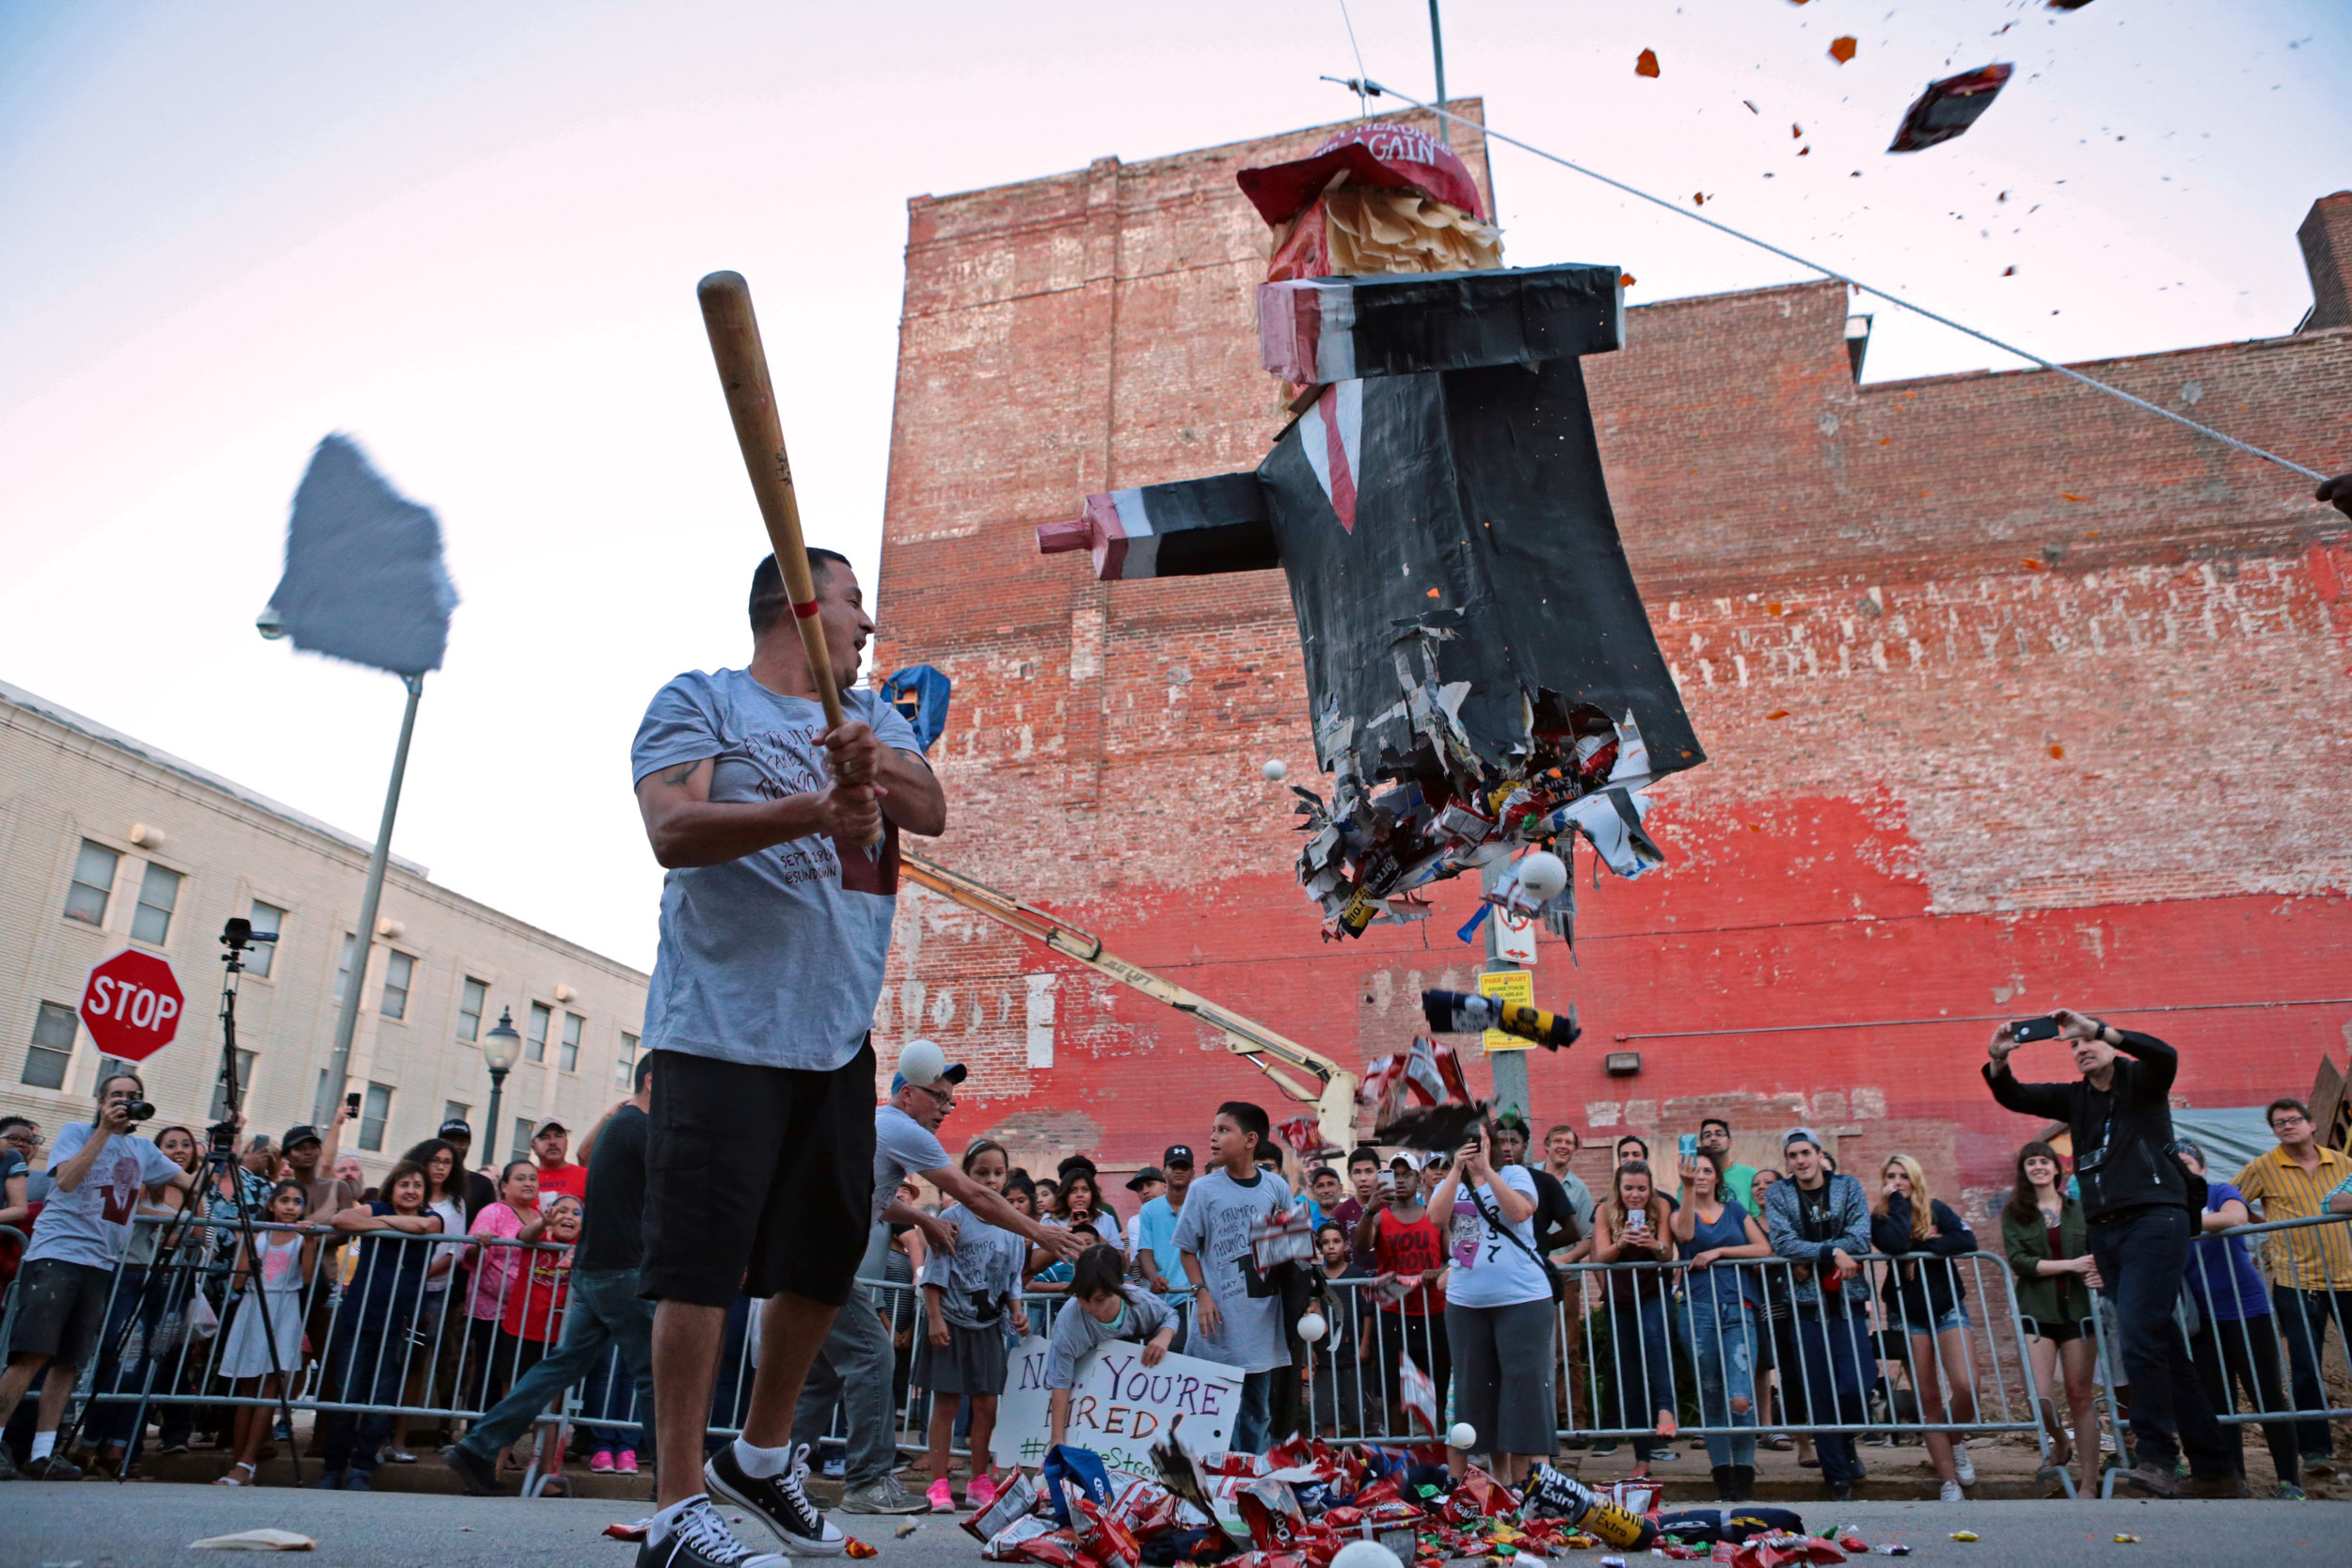 Roberto Estrada, 39, of St. Louis, hits the Donald Trump piñata at Viva Mexico on Cherokee Street in St. Louis, celebrating Mexico's Independence Day, on Sunday, Sept. 18, 2016.